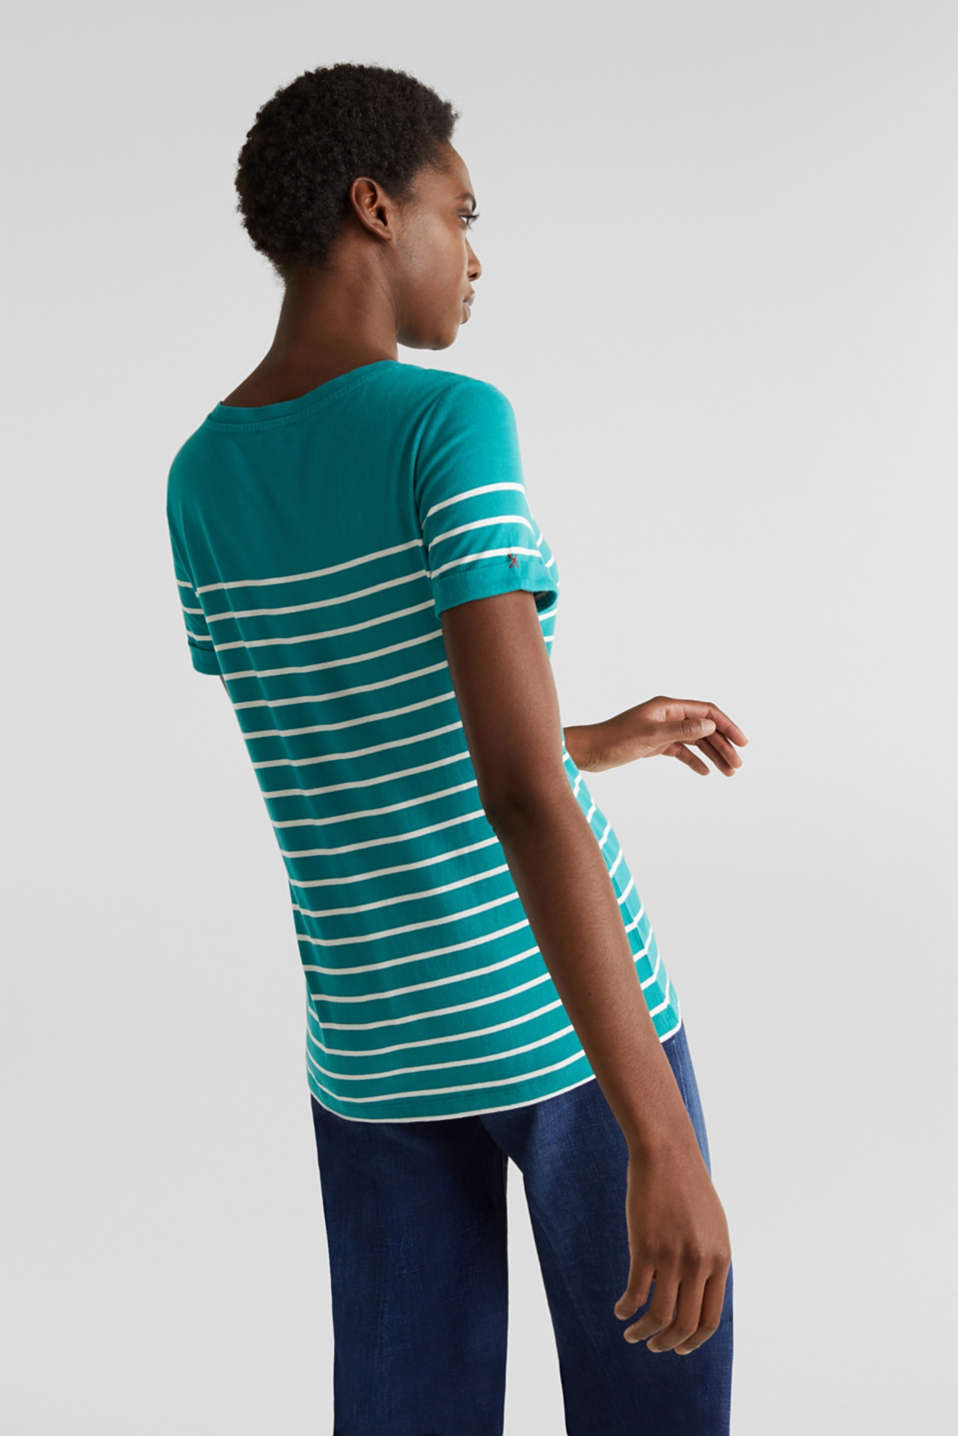 Striped top with embroidery, 100% cotton, TEAL GREEN, detail image number 2